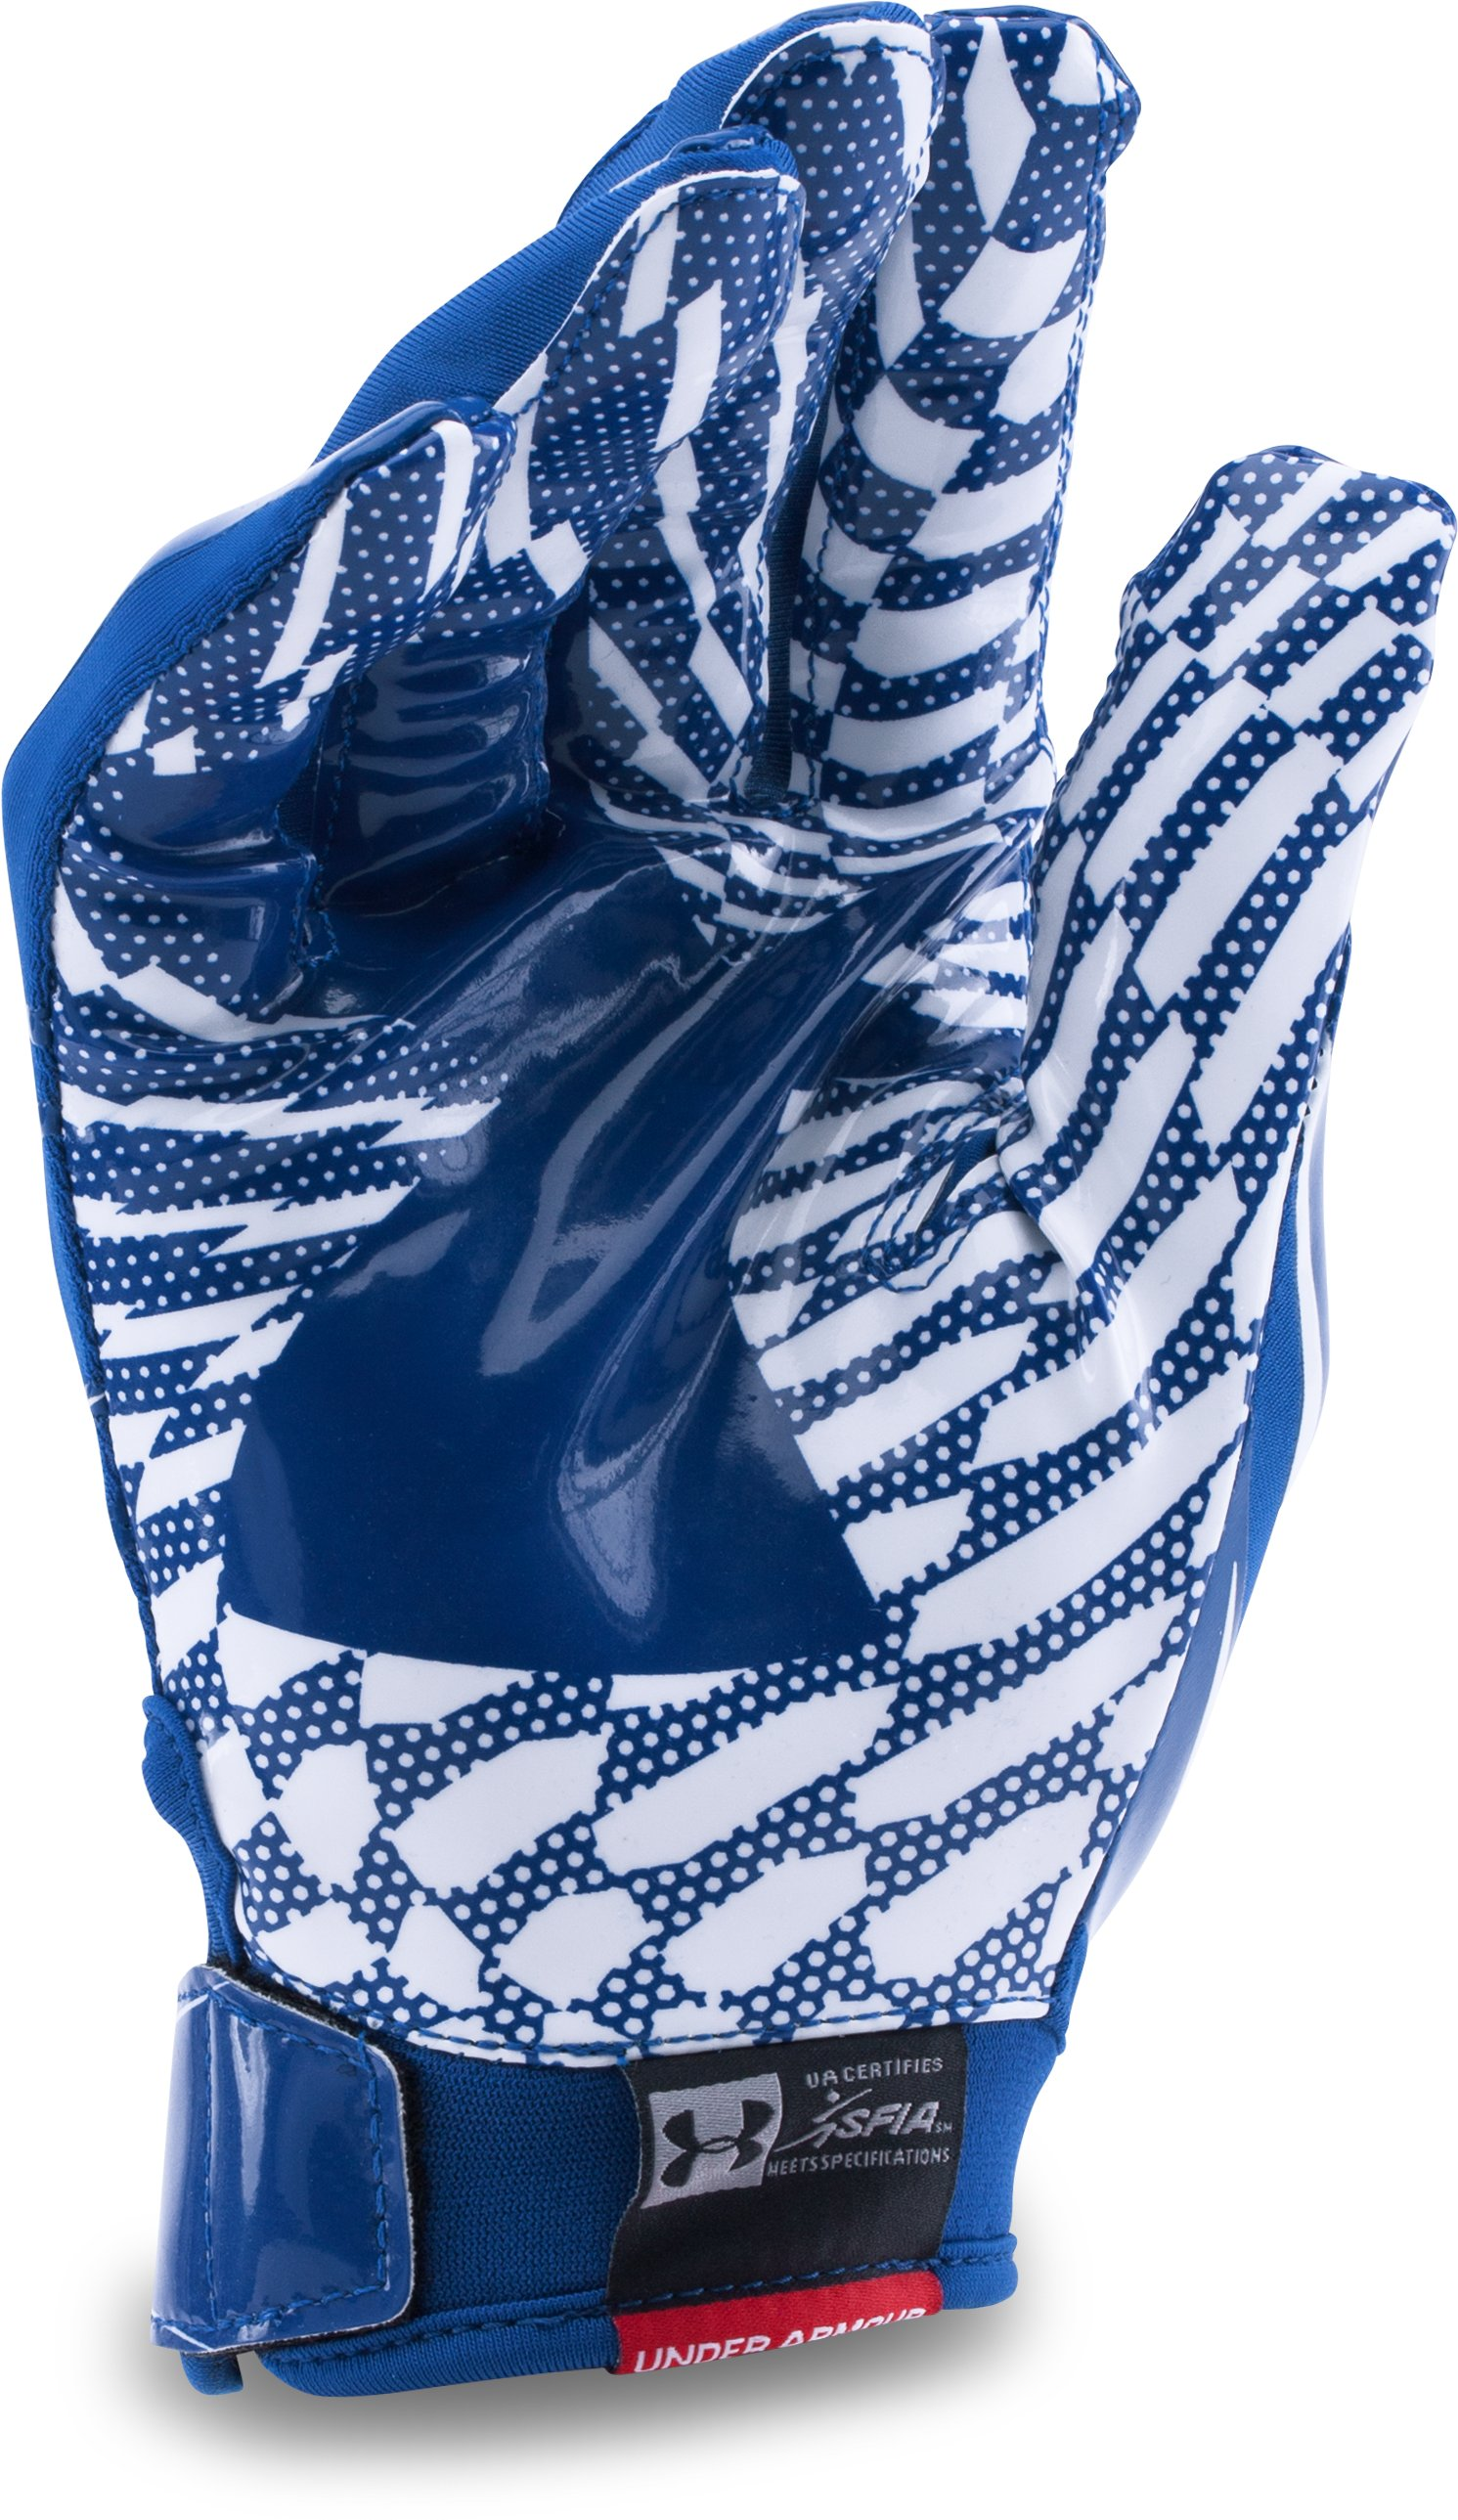 Boys' Pee Wee UA F5 Football Gloves, Royal